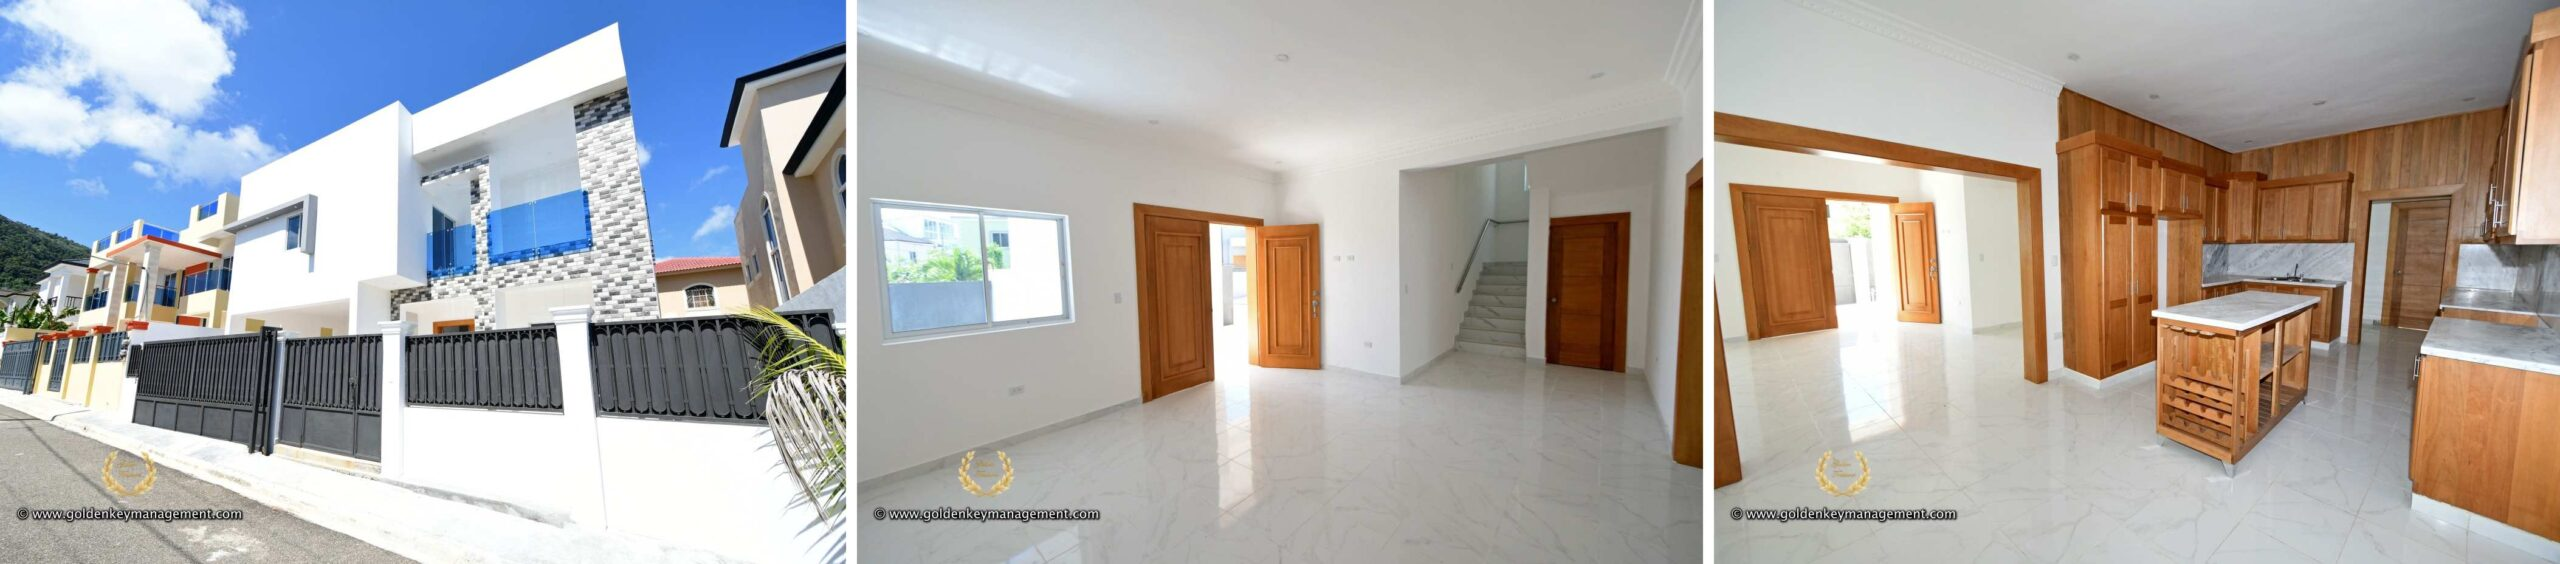 House listed for sale in Puerto Plata